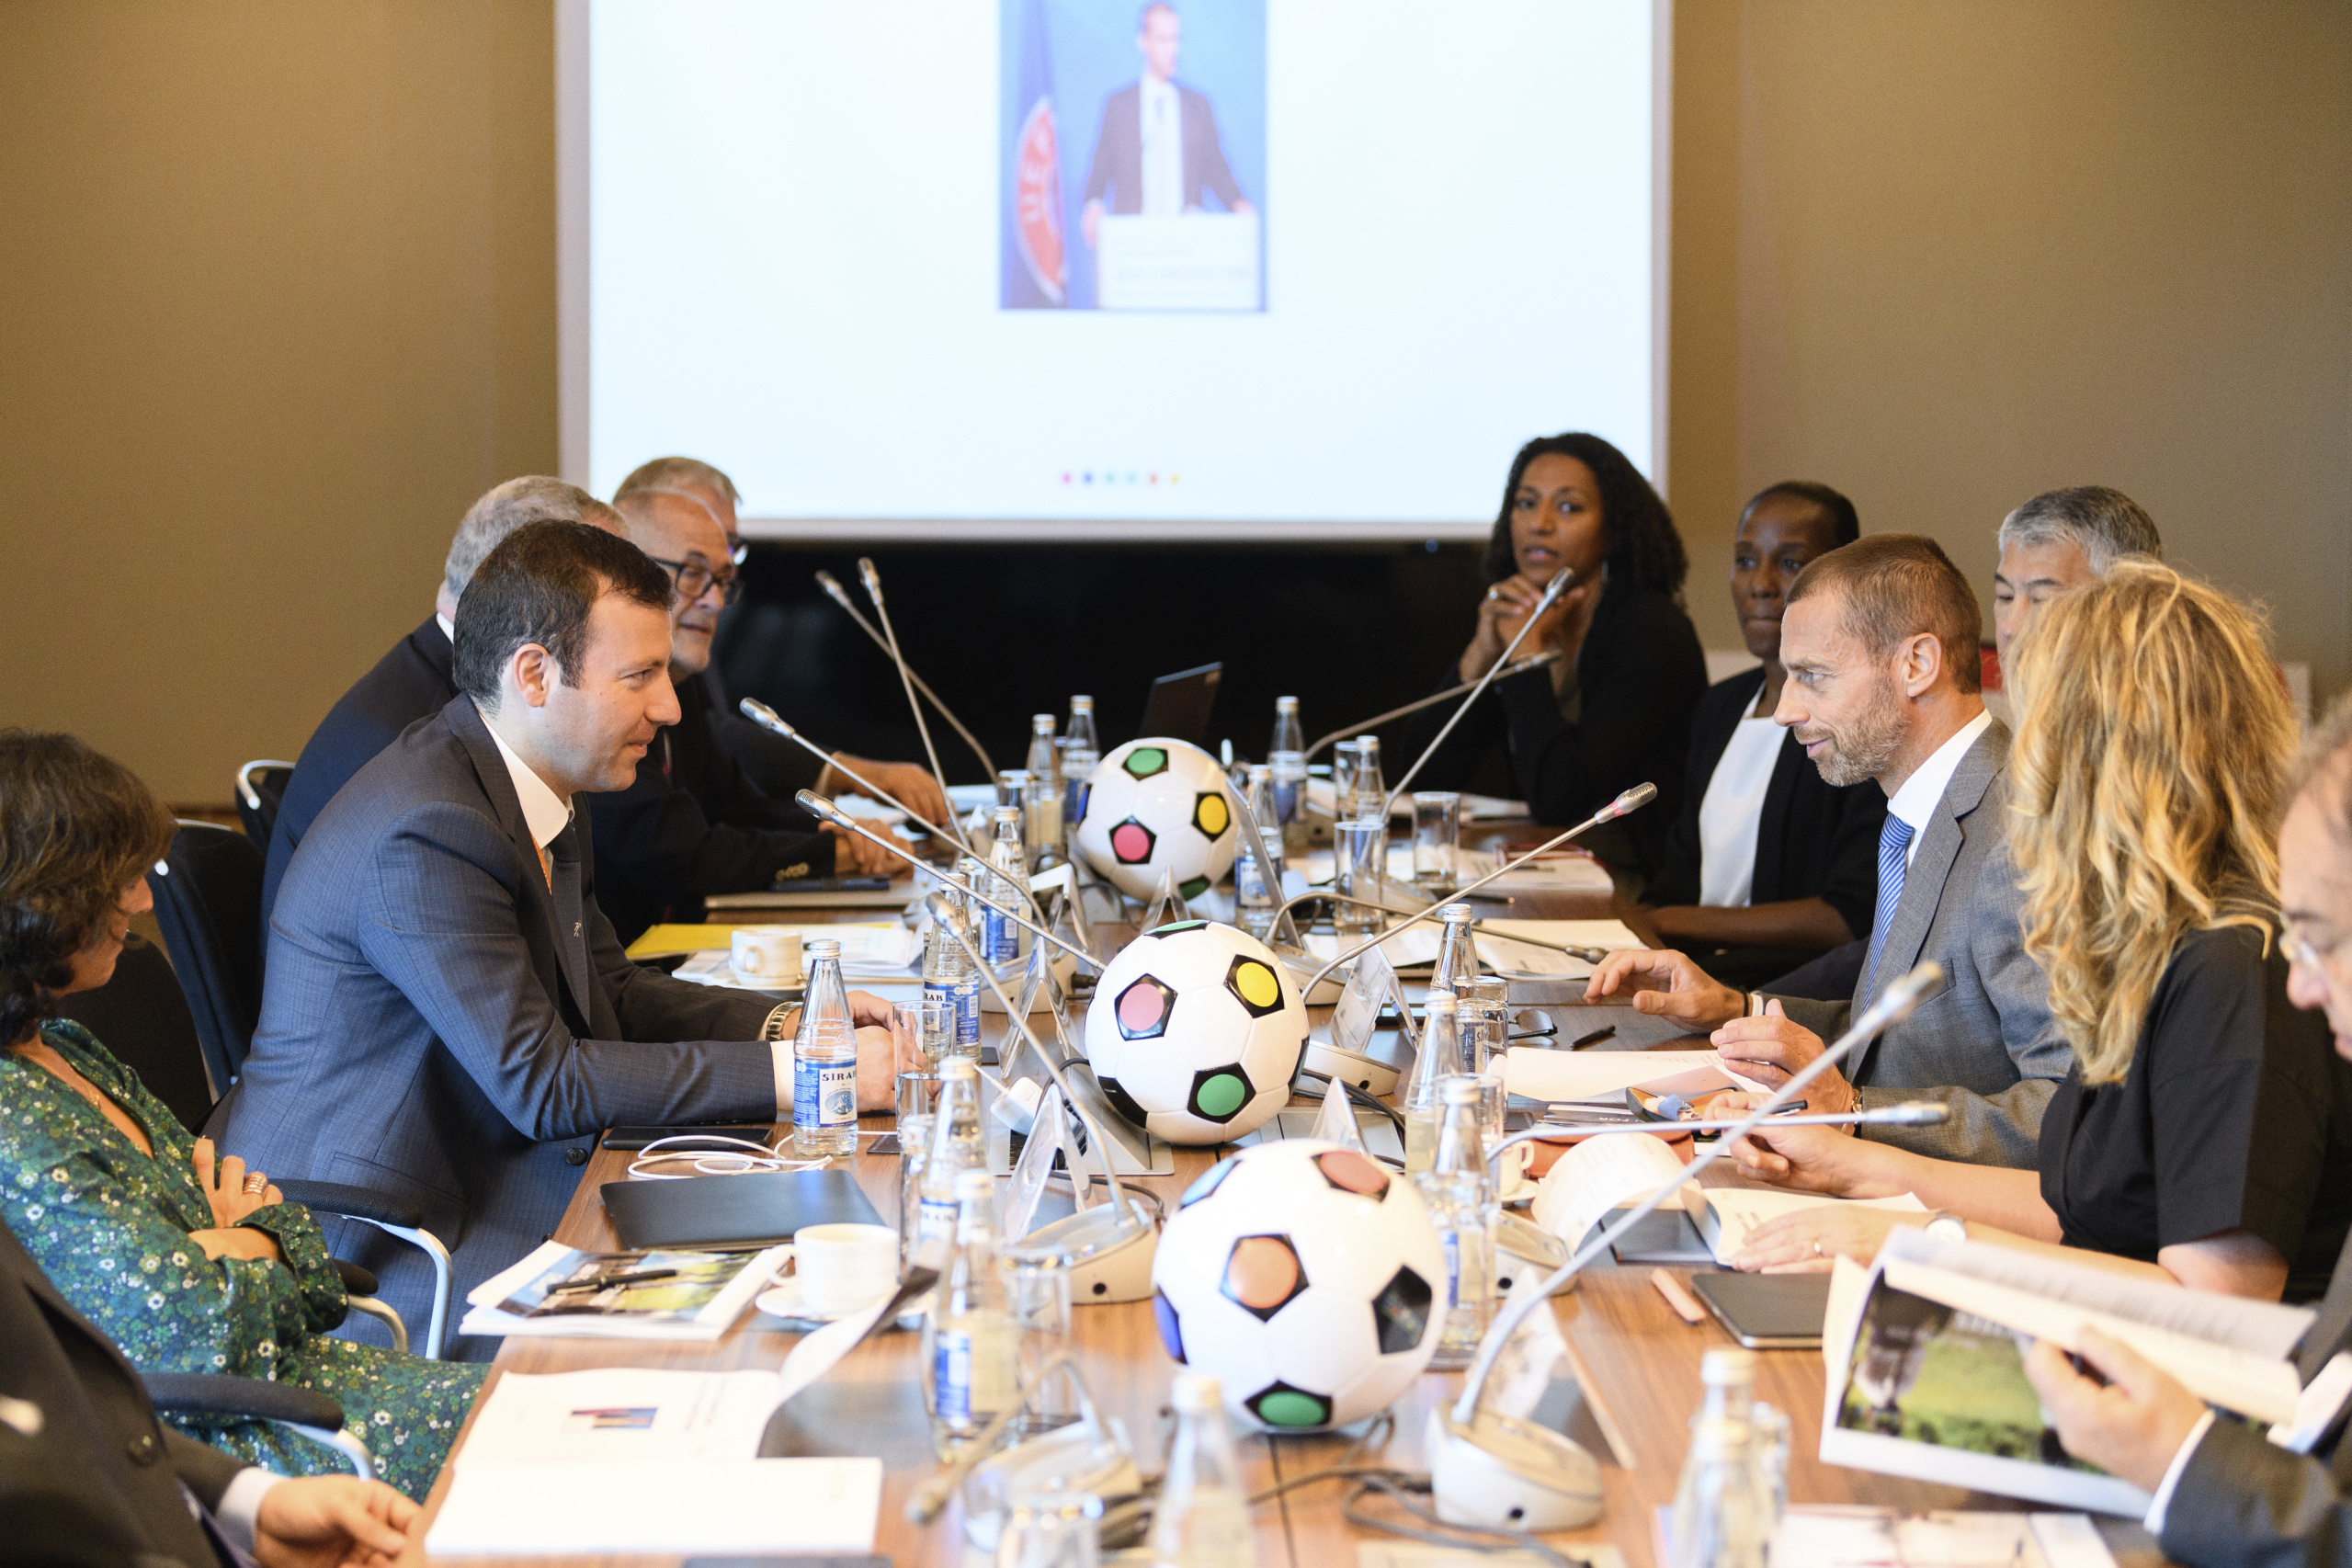 BAKU, AZERBAIJAN - MAY 29: UEFA Foundation for Children Board meeting on May 29, 2019 in Baku, Azerbaijan. (Photo by Harold Cunningham - UEFA/UEFA via Getty Images)